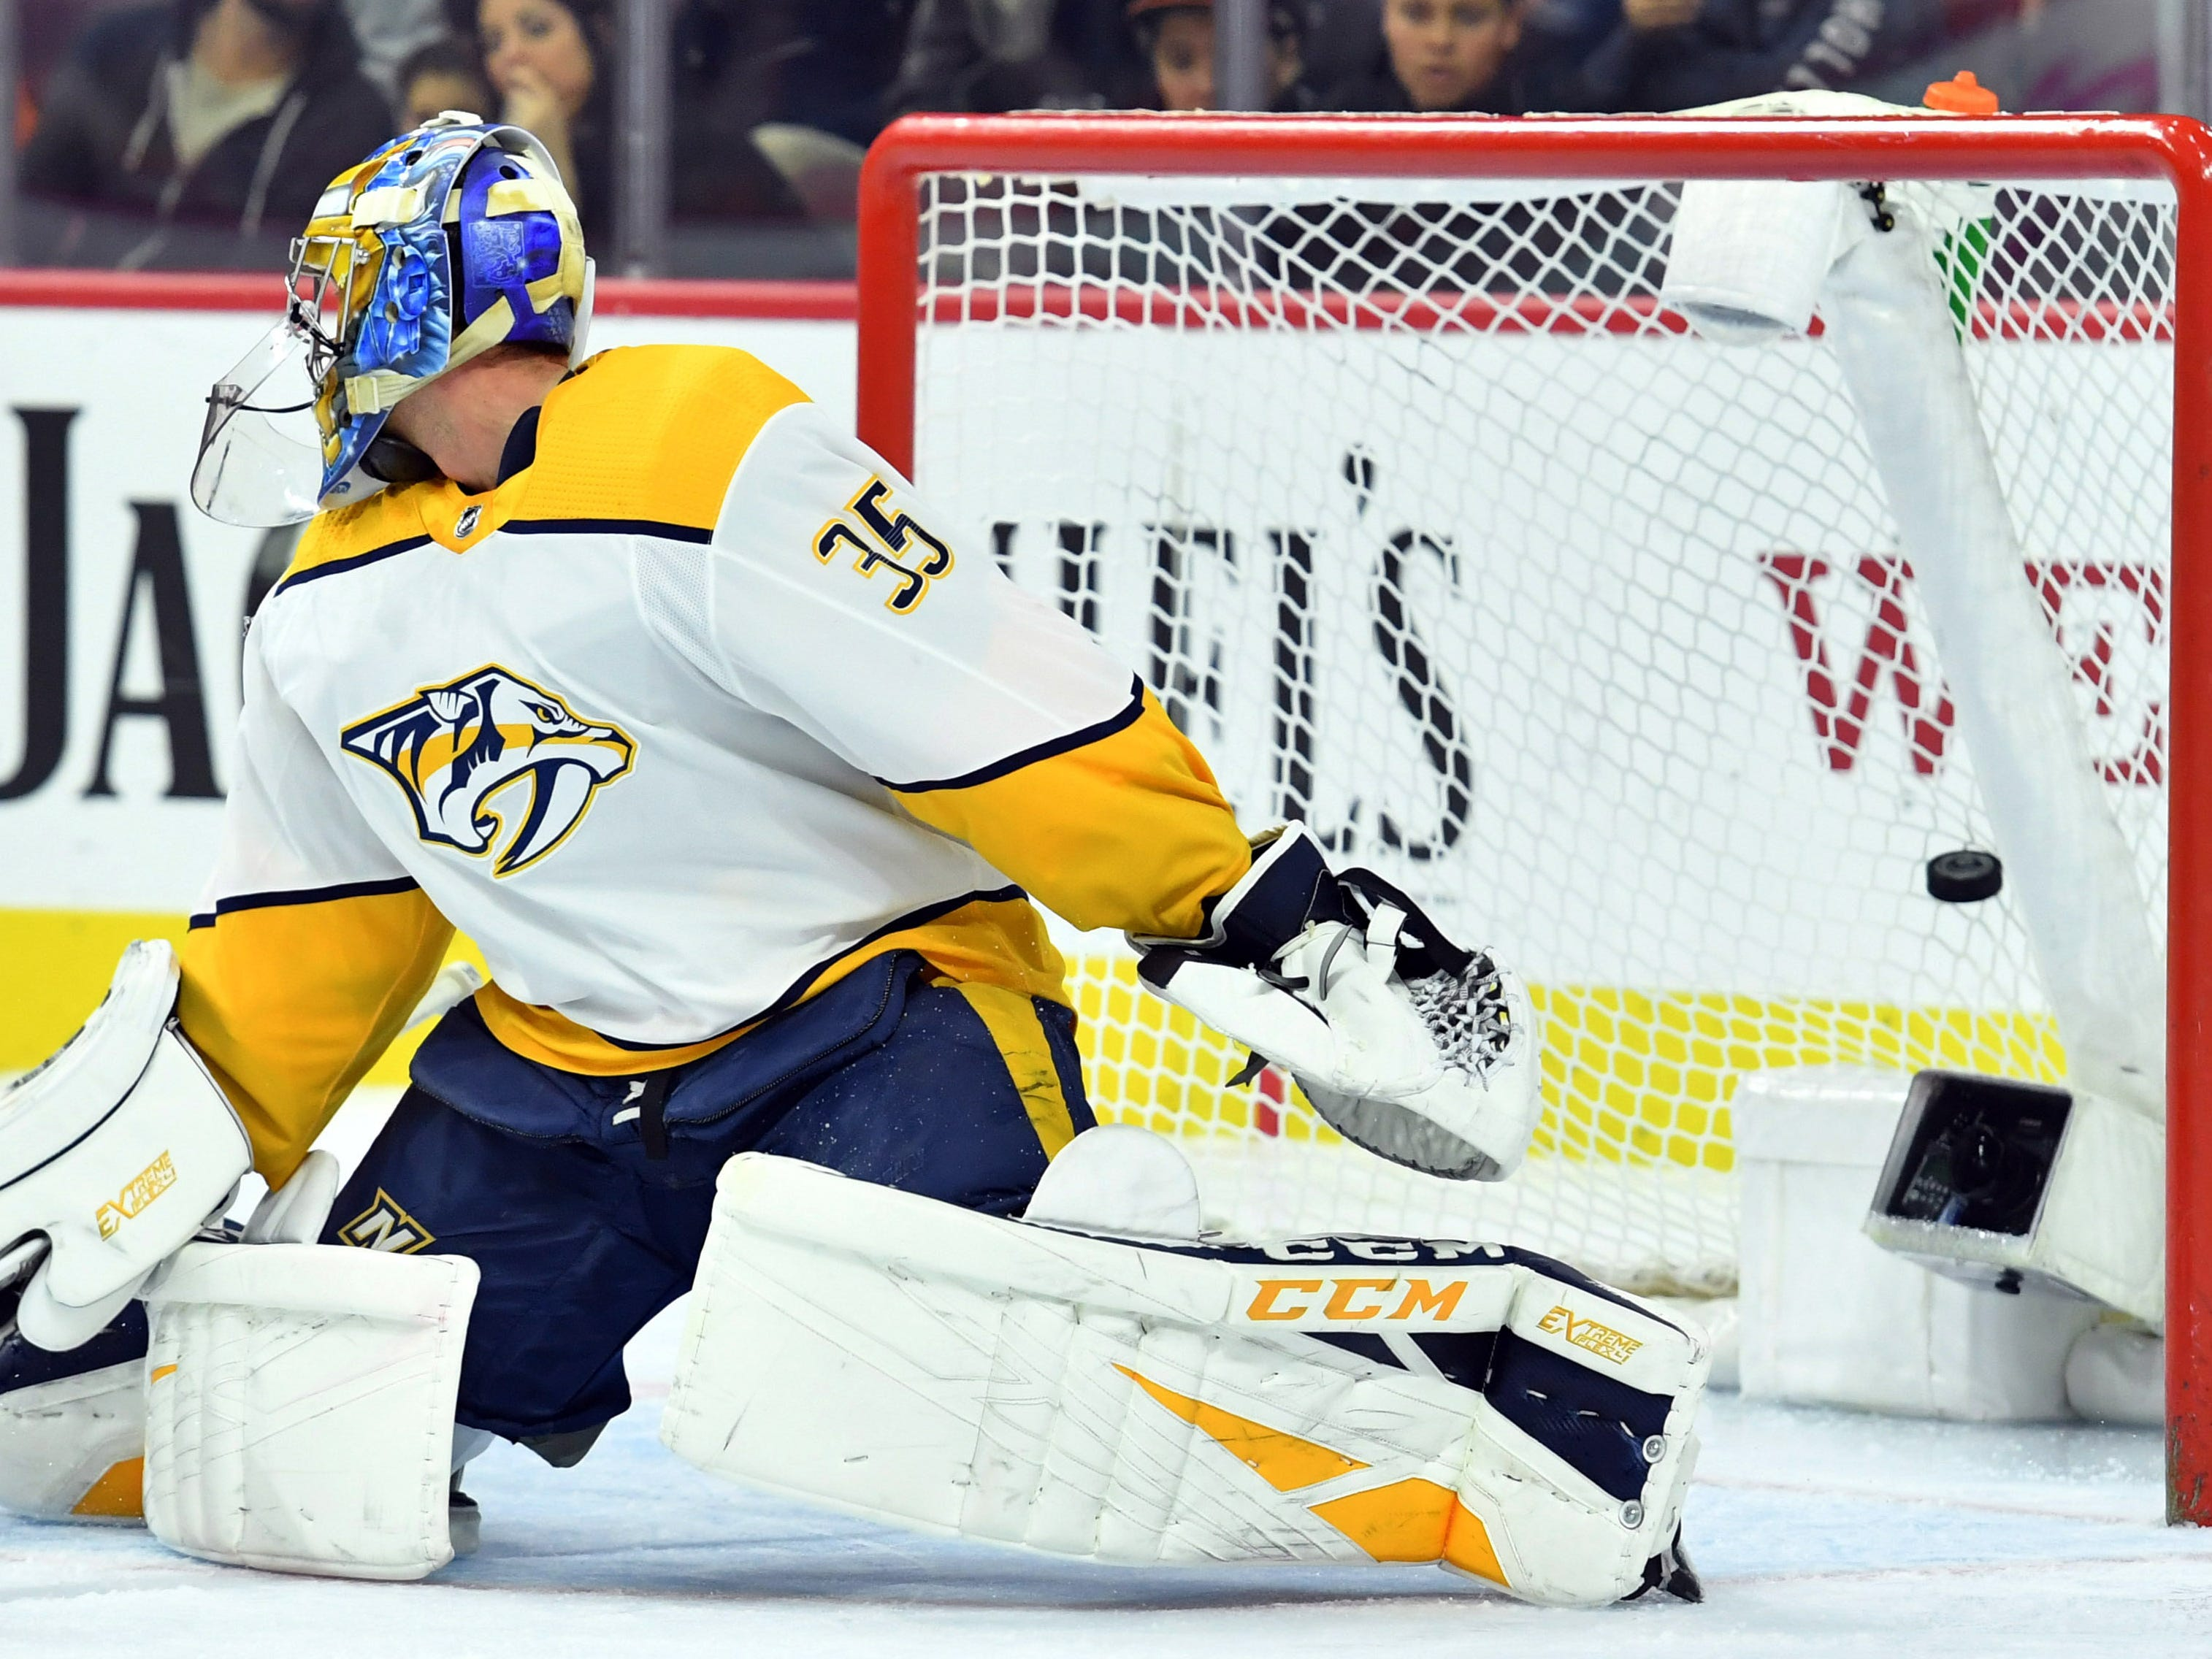 Nashville Predators goaltender Pekka Rinne (35) can't stop a goal by Philadelphia Flyers center Claude Giroux (28) (not pictured) during the second period at Wells Fargo Center.